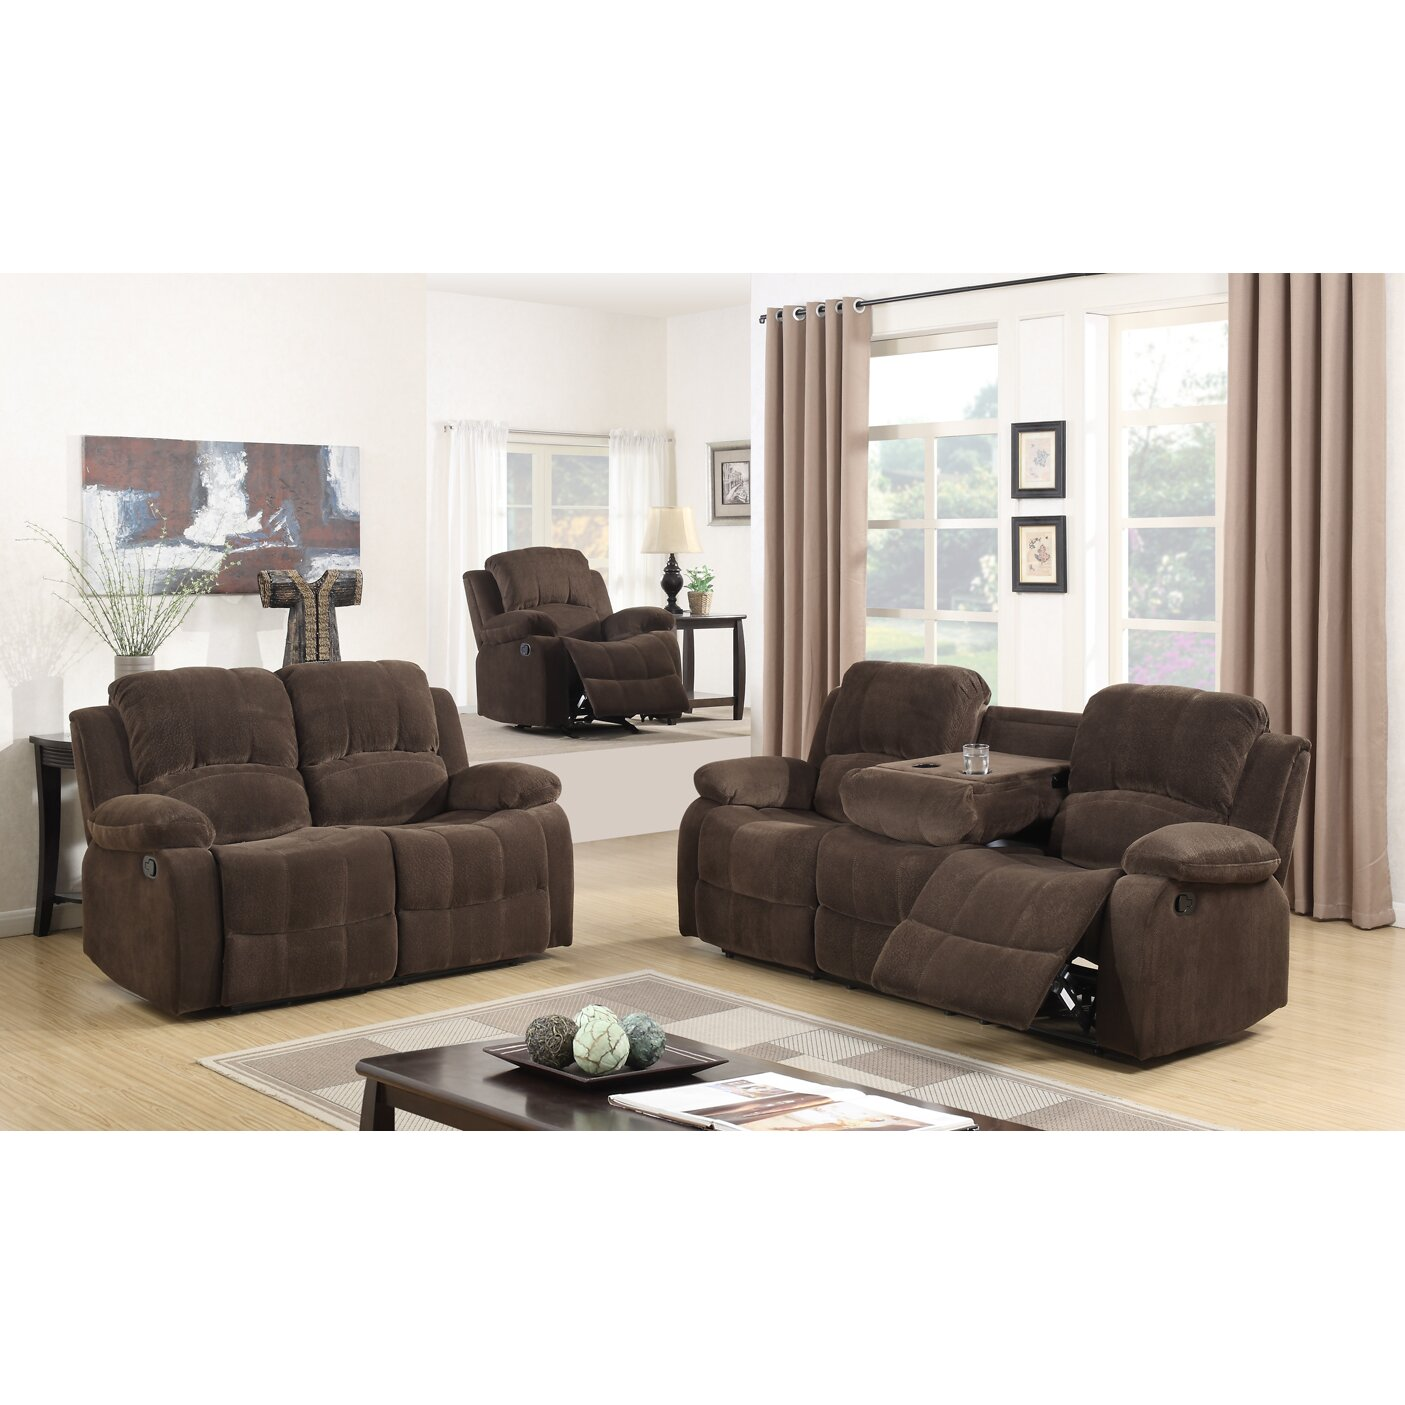 Best quality furniture fabric 3 piece recliner living room for 3 piece living room furniture